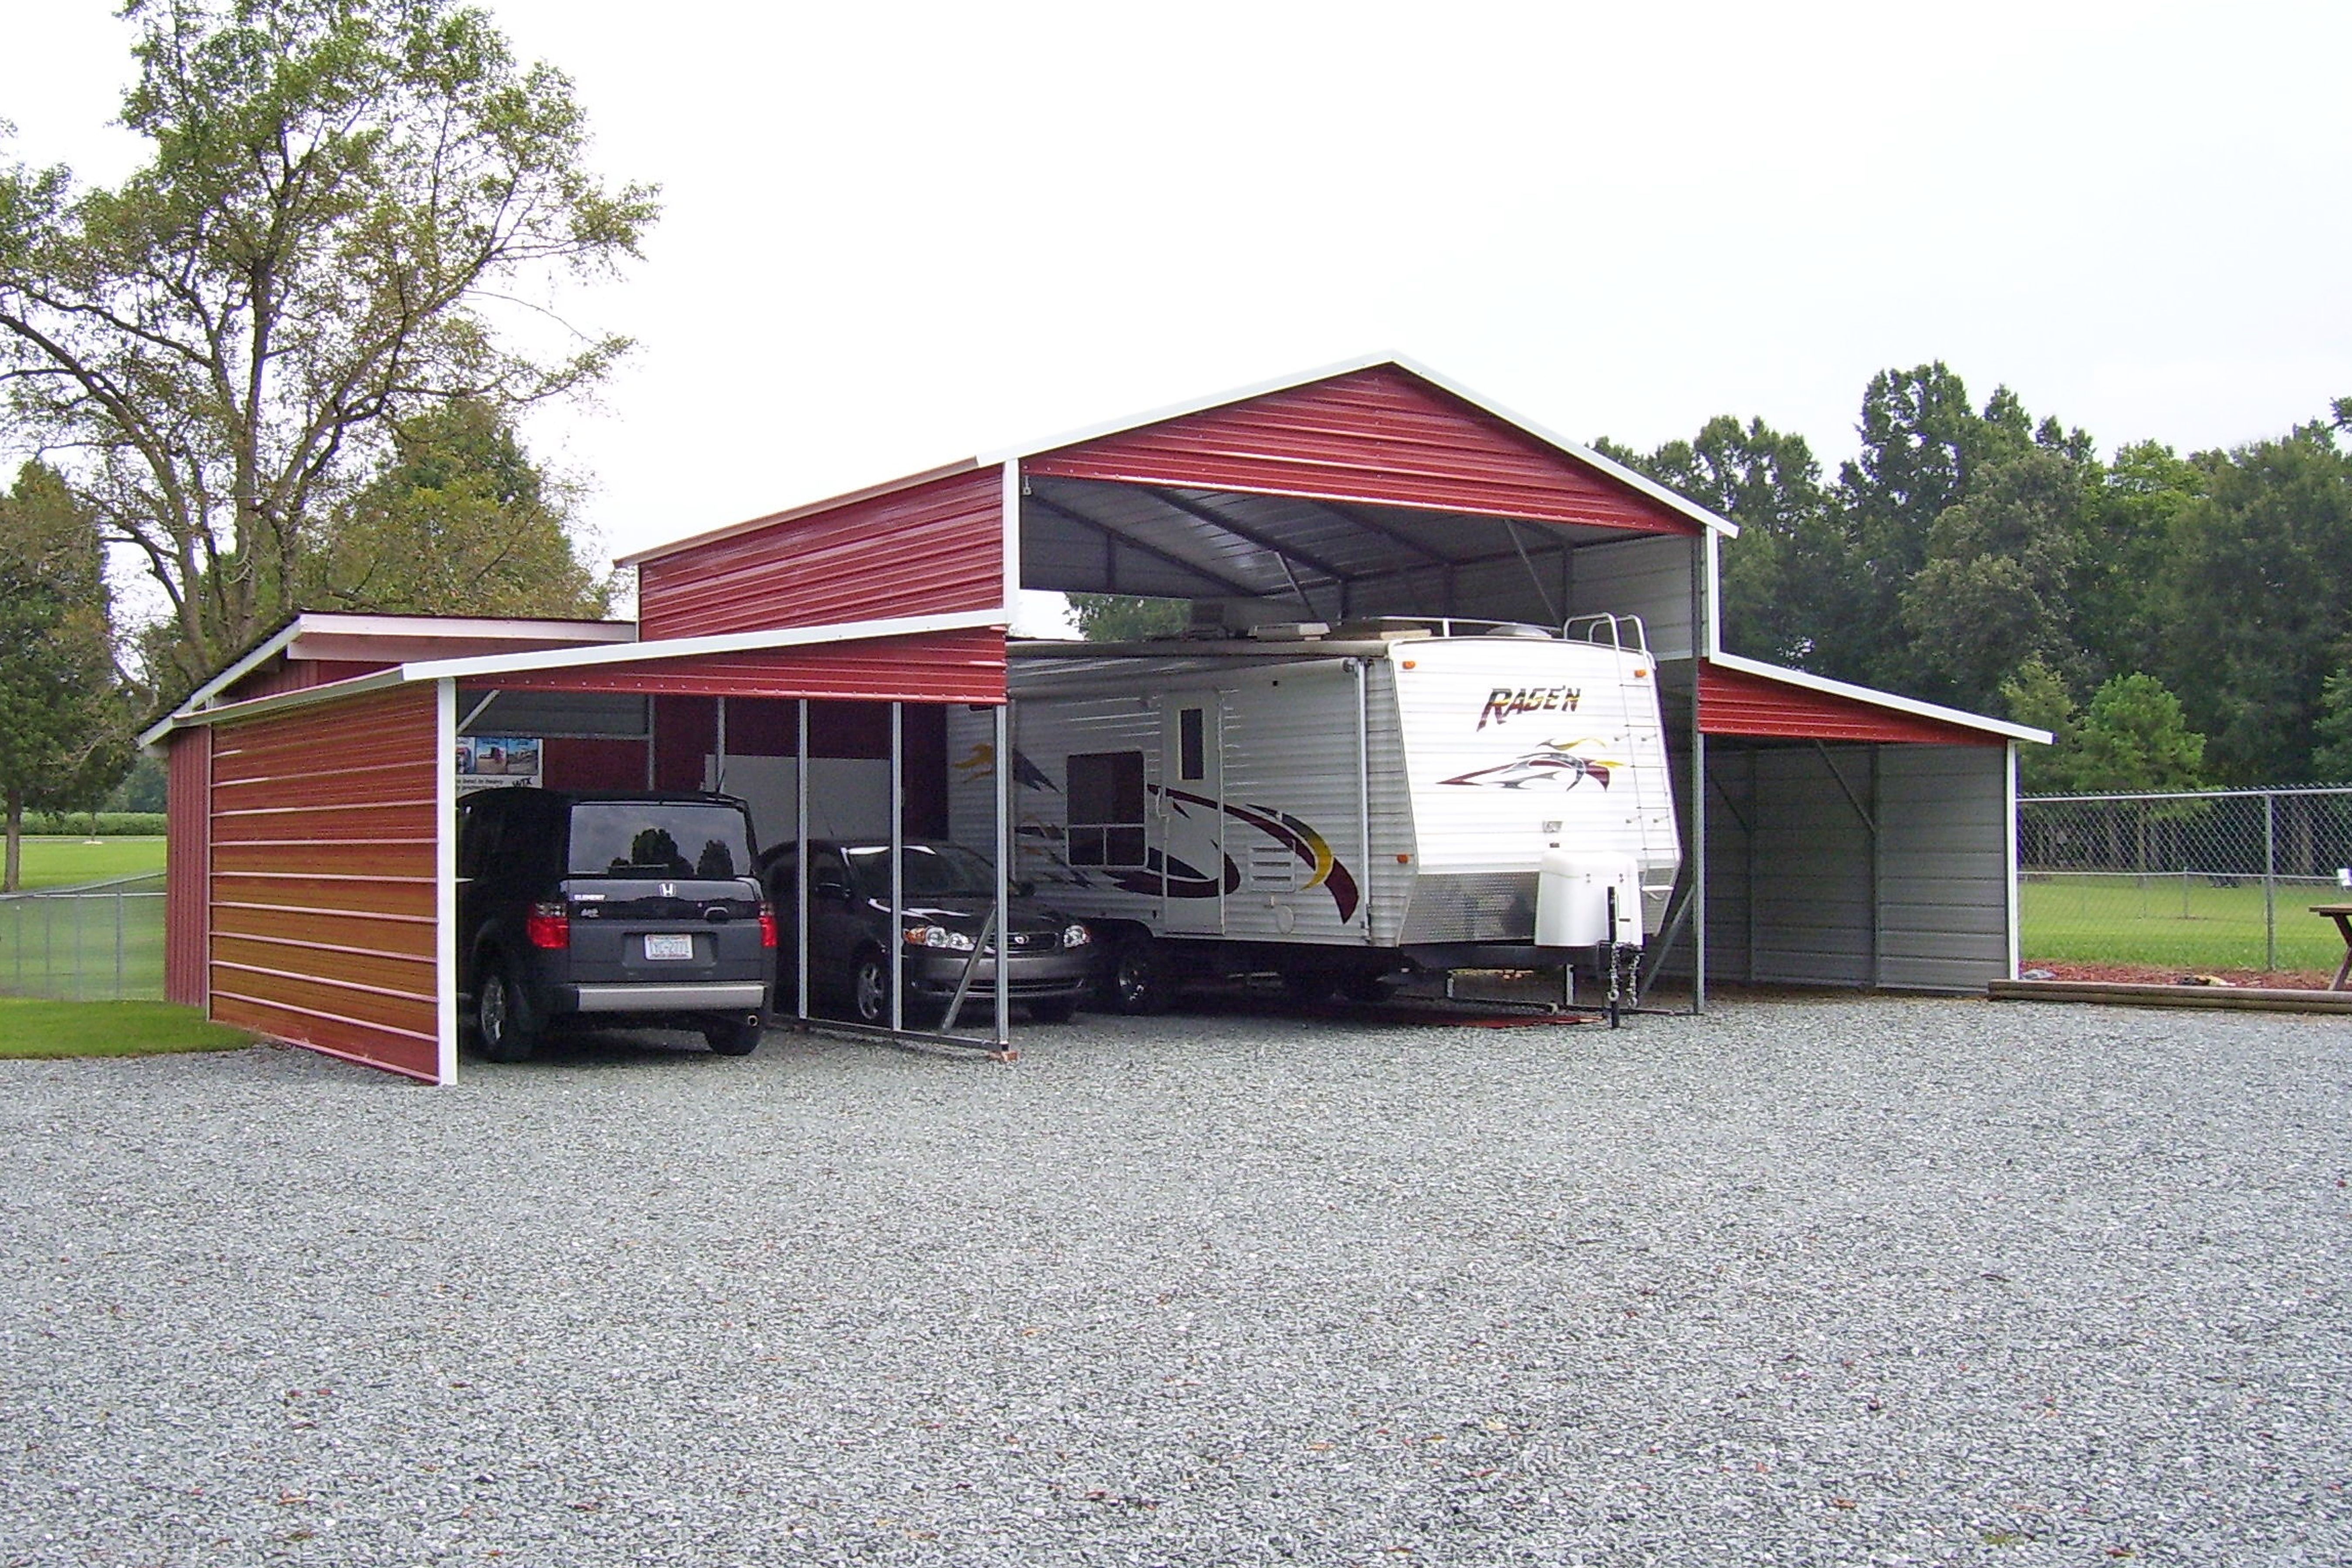 Multi use building red and white trim. RV cover and